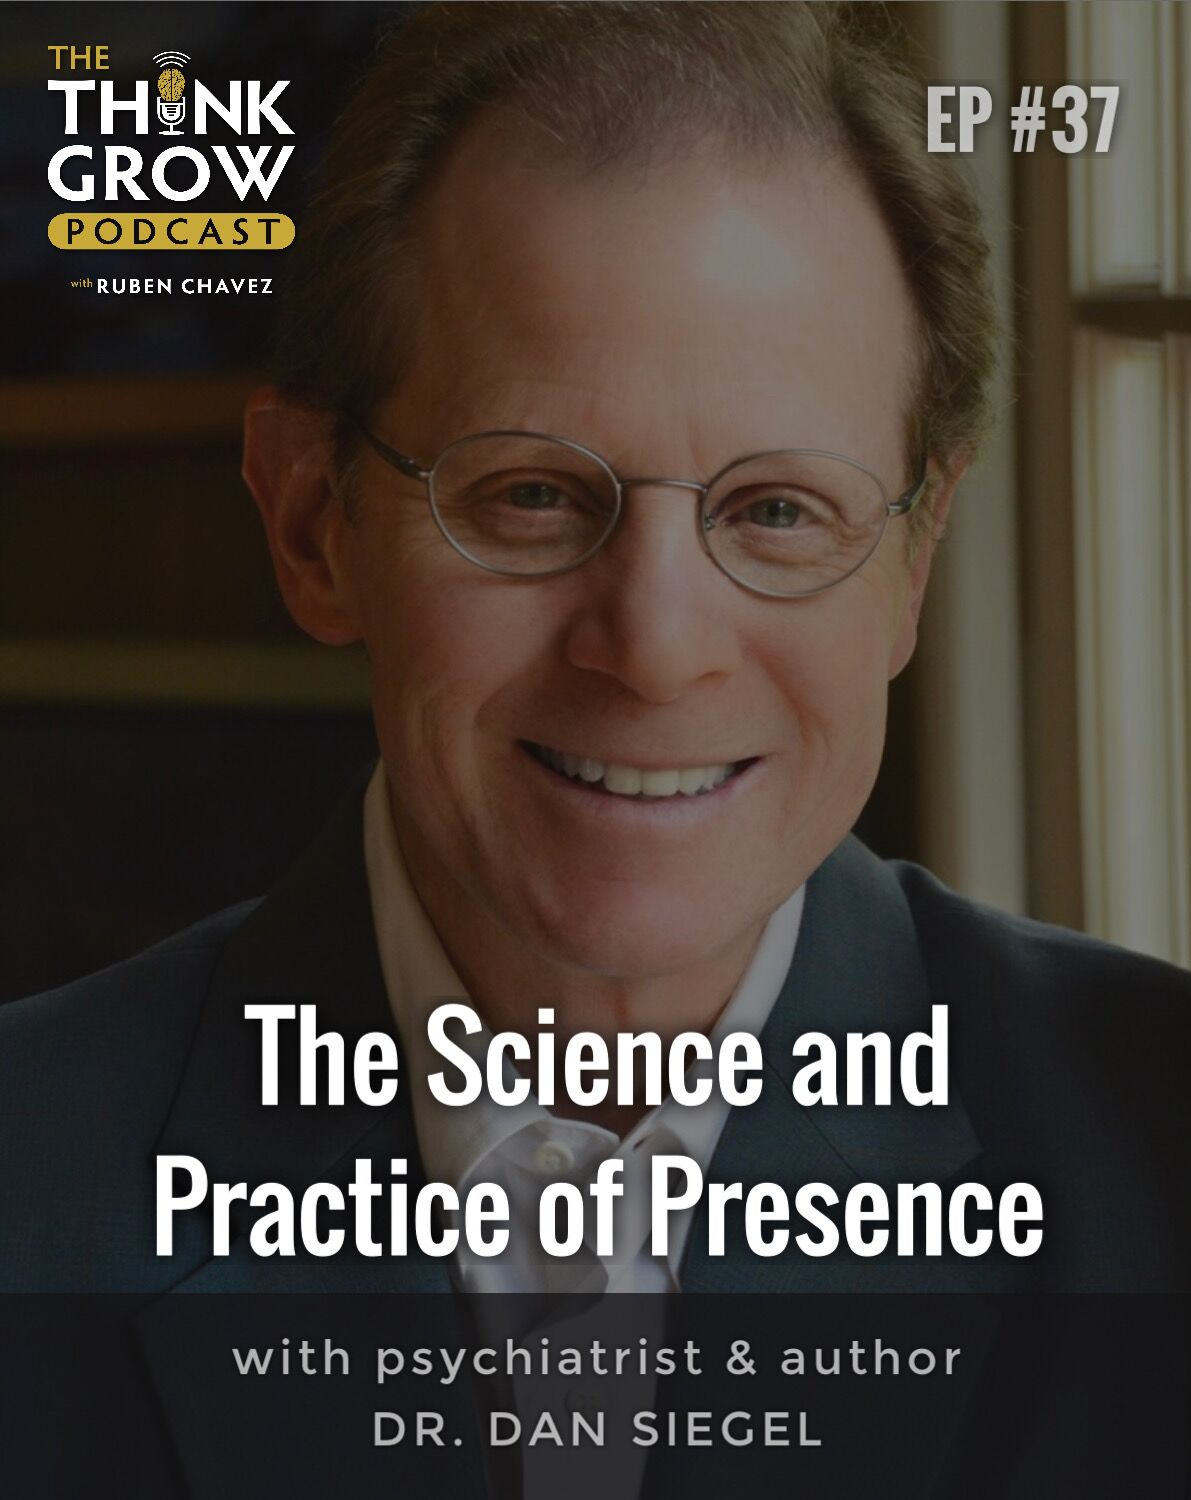 Dr. Dan Siegel - The Science and Practice of Presence